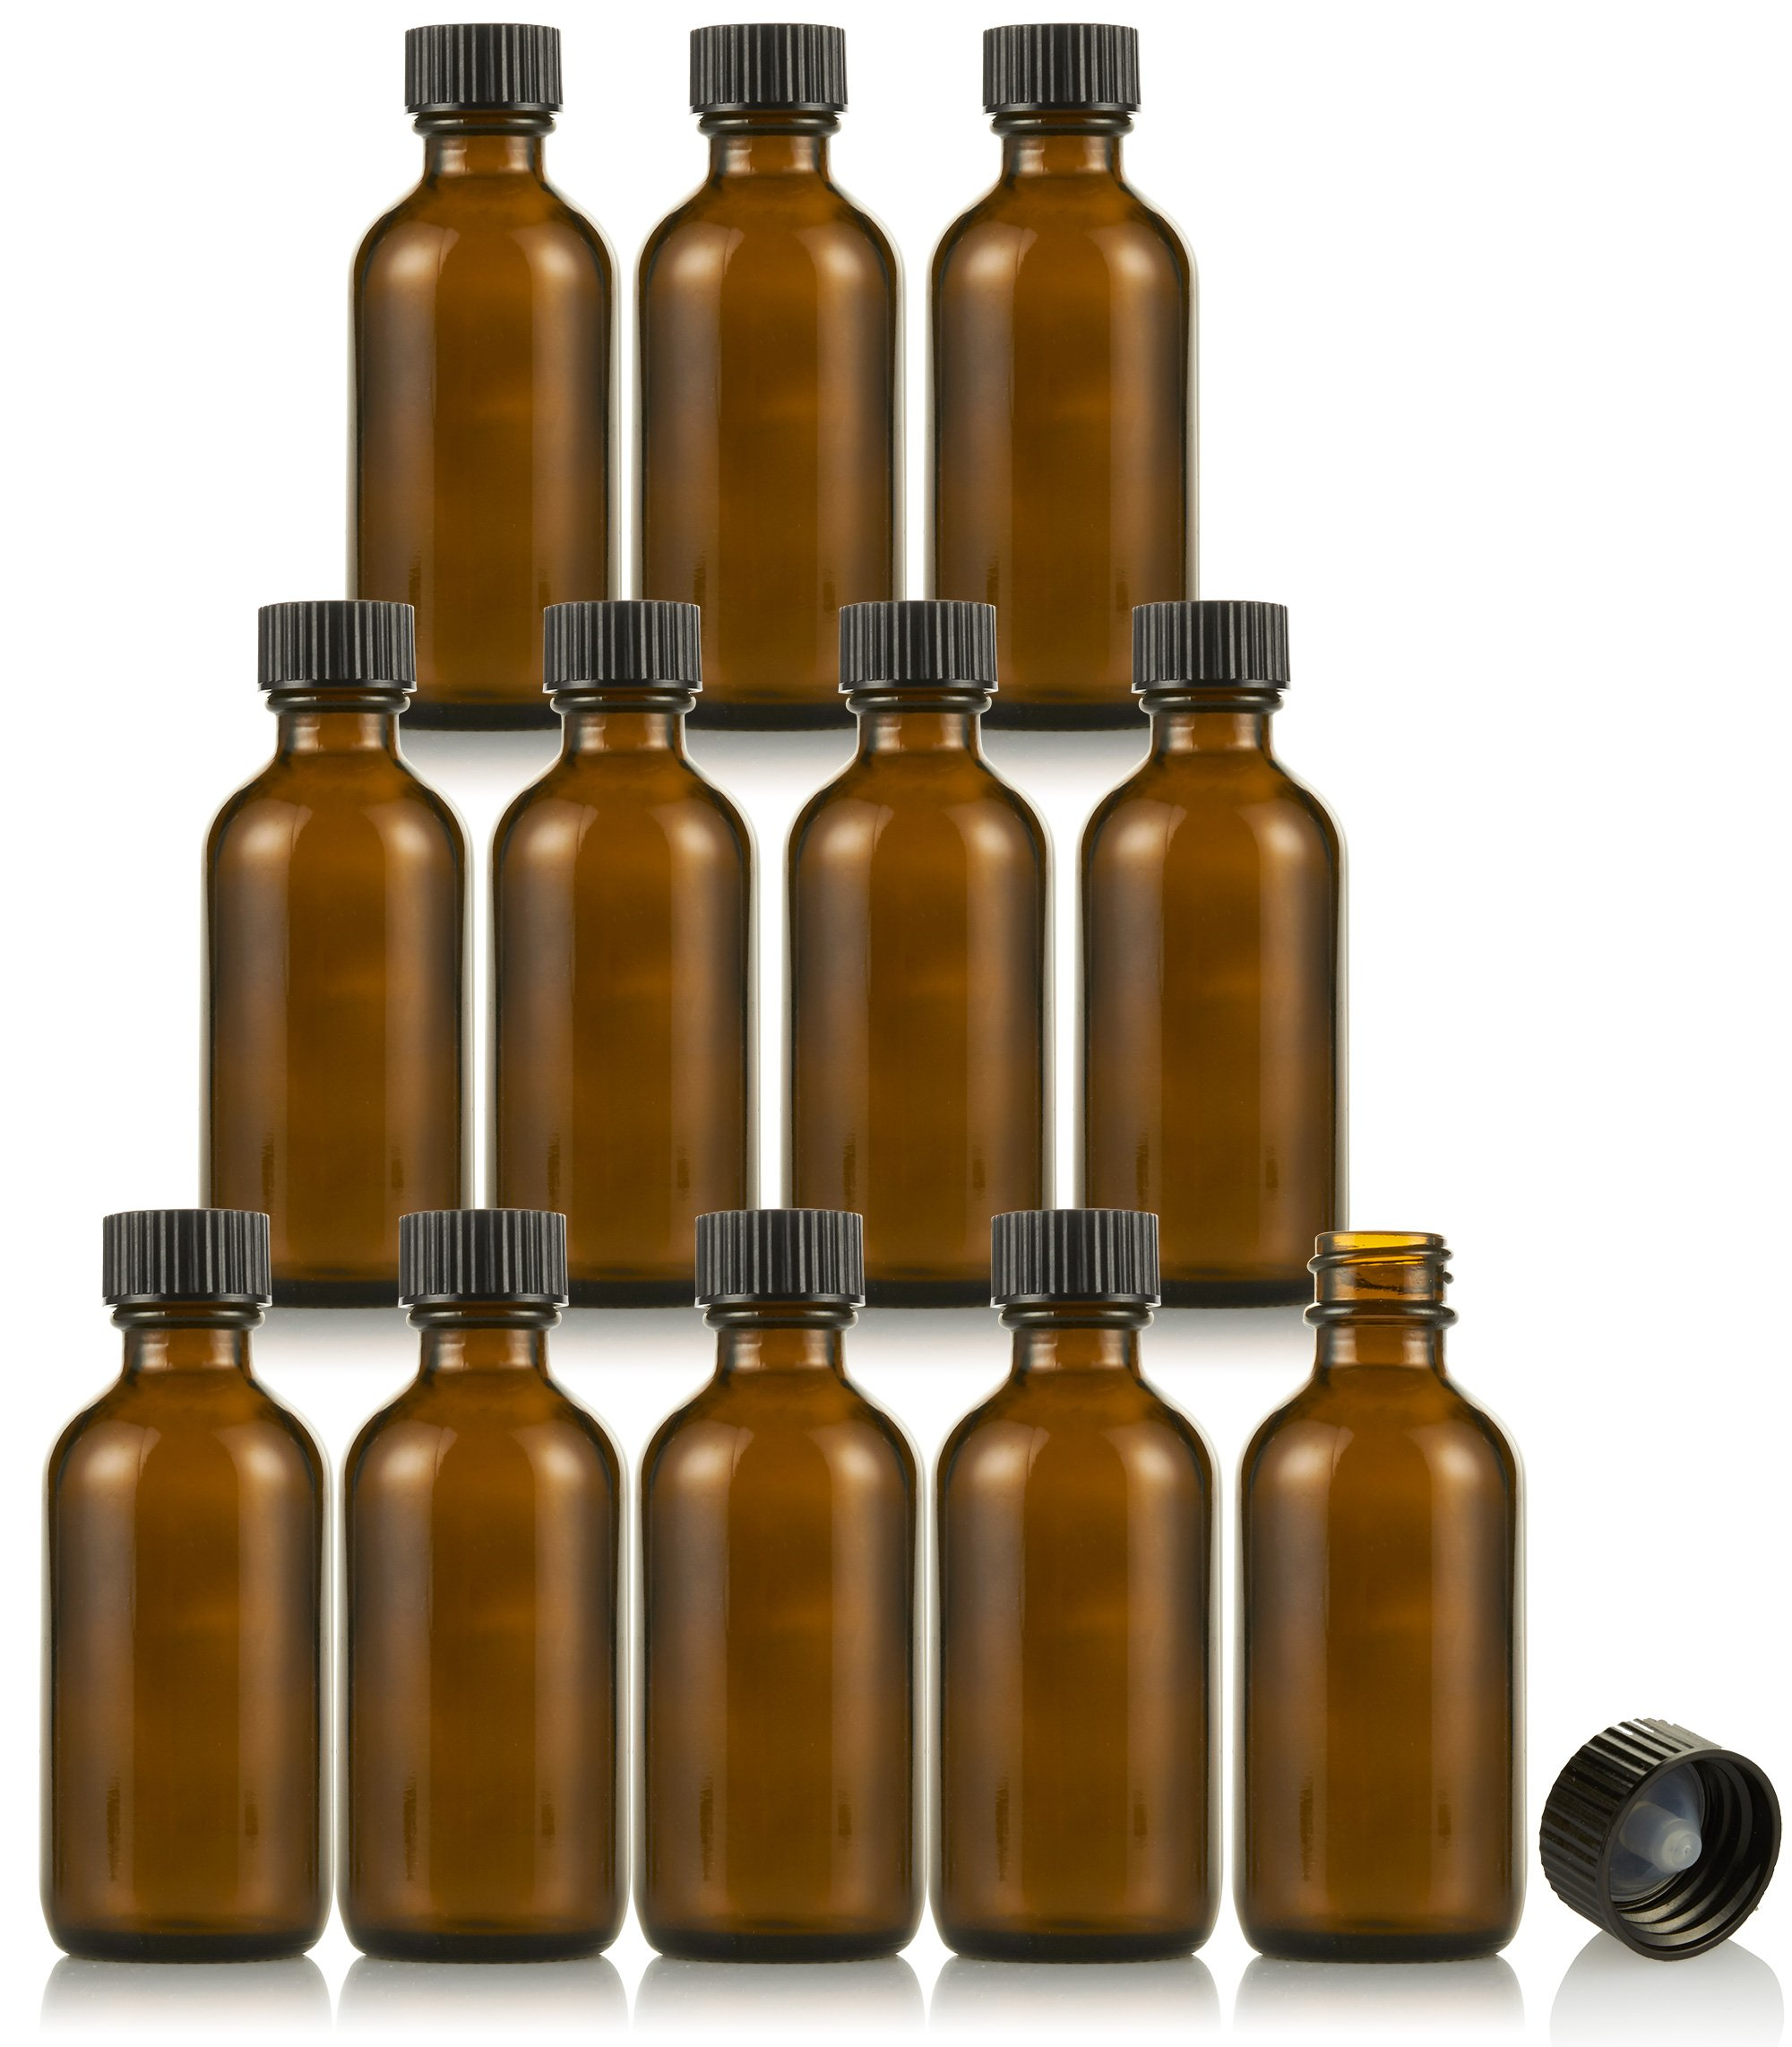 Amber Glass Bottles - 12-Pack Boston Round Bottles with Black Poly Cone Cap for Tight Seal - Refillable Glass Bottles for Essential Oils, Extracts and More - Perfect for Light Sensitive Liquids - 2 oz